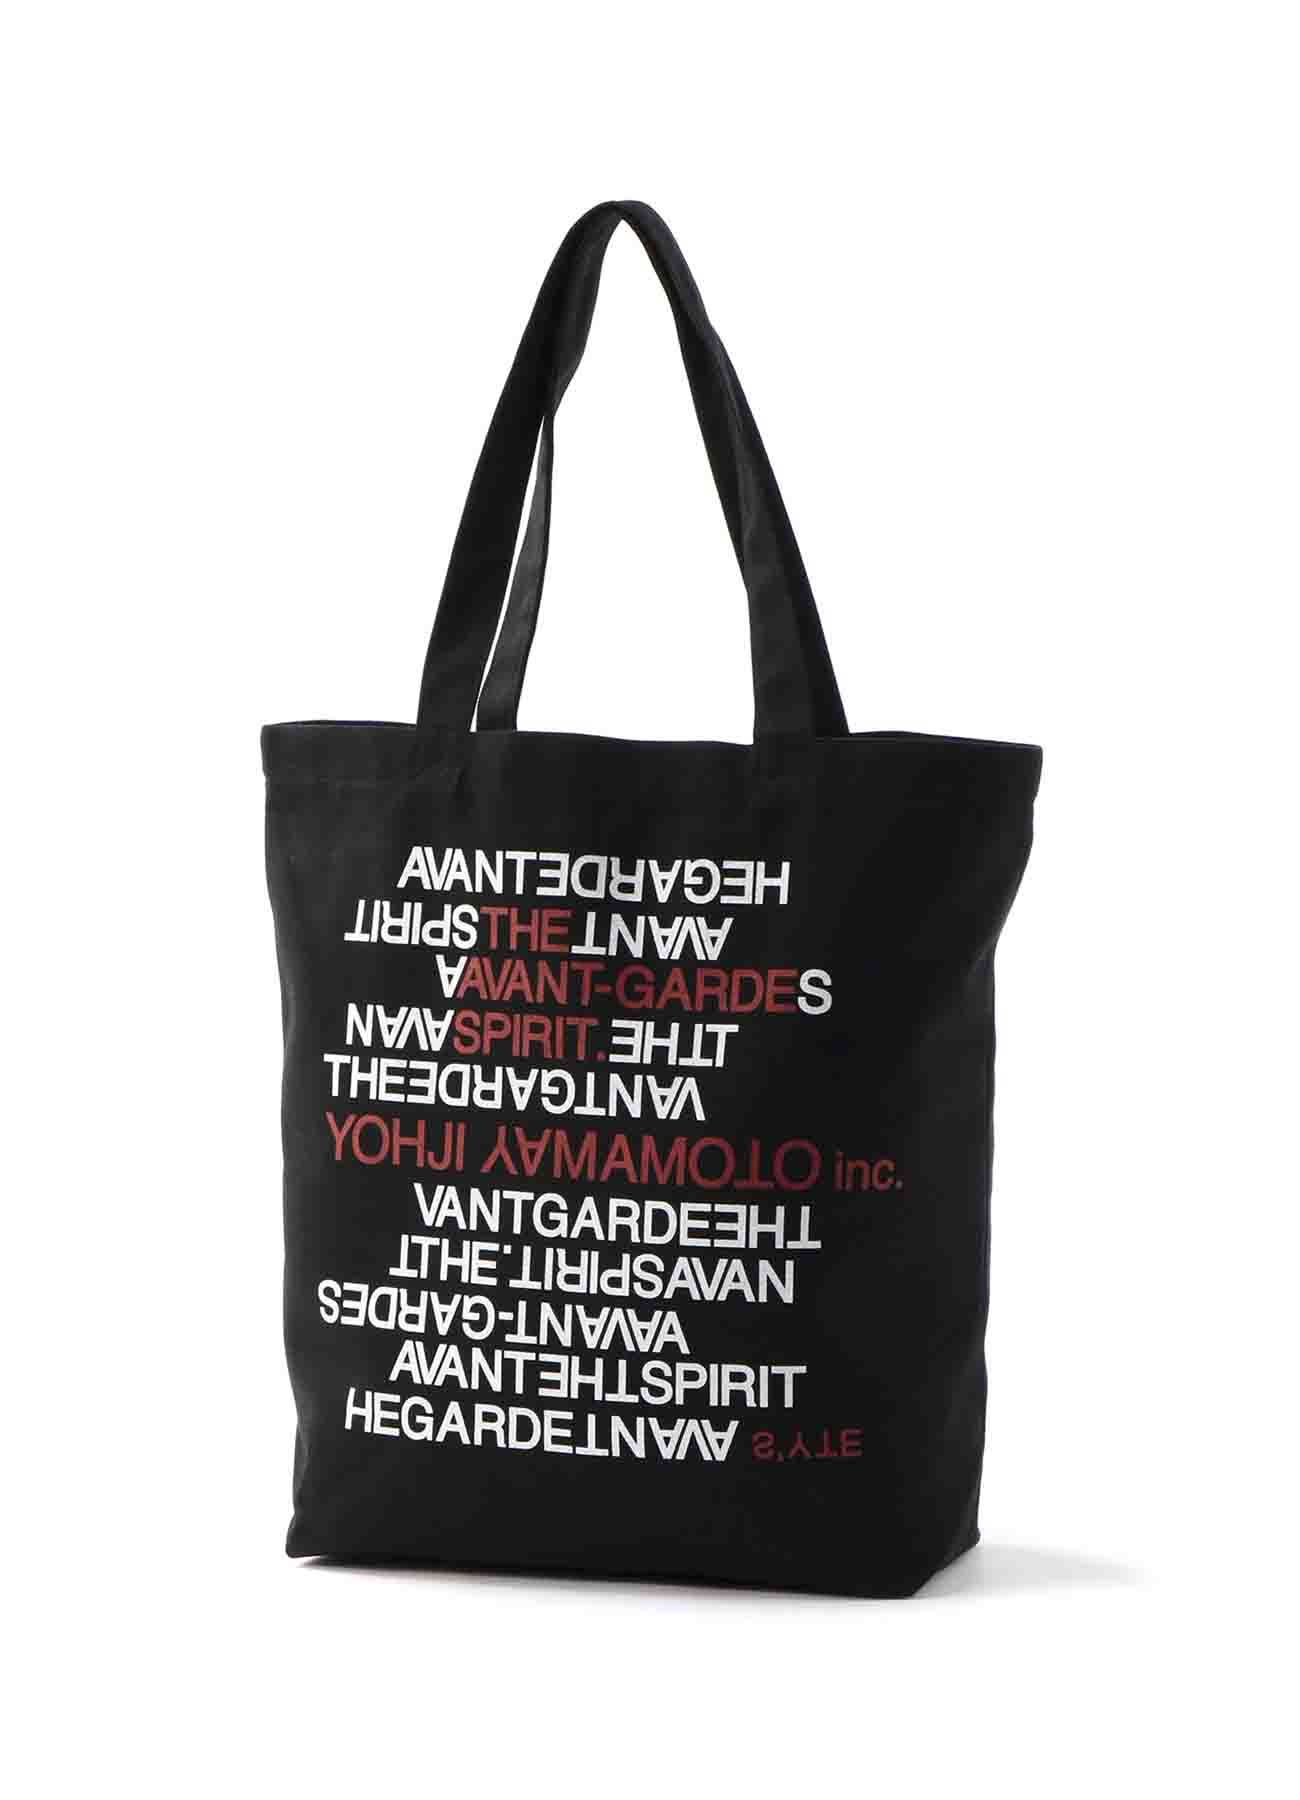 The Avant-Garde Spirit Message Tote